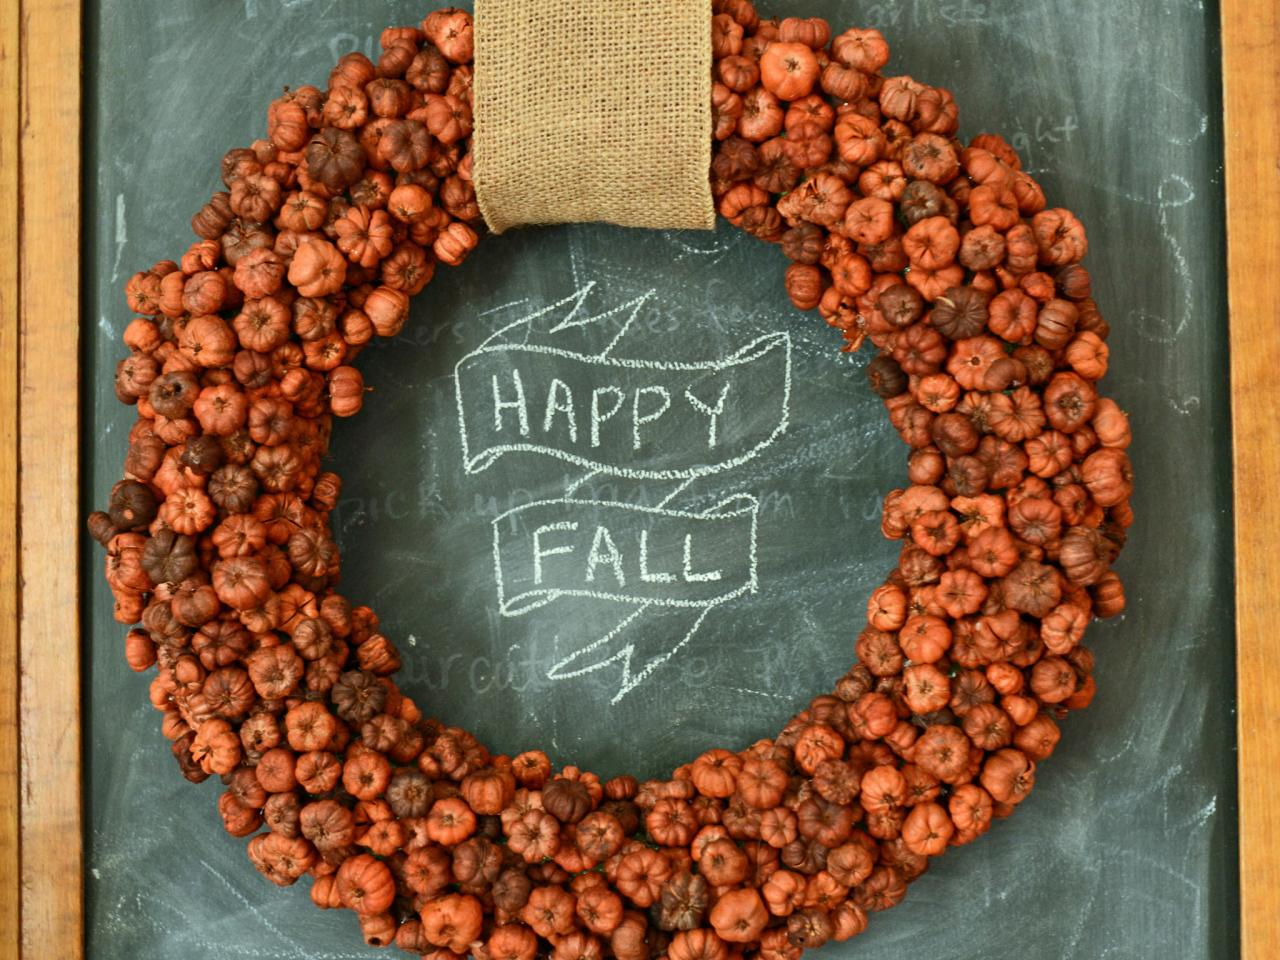 fun_activities_outdoor_fall_wreaths_front_door_78_outdoor_wreaths_for_front_door_uk__rustic_mini_pumpkin_wreath